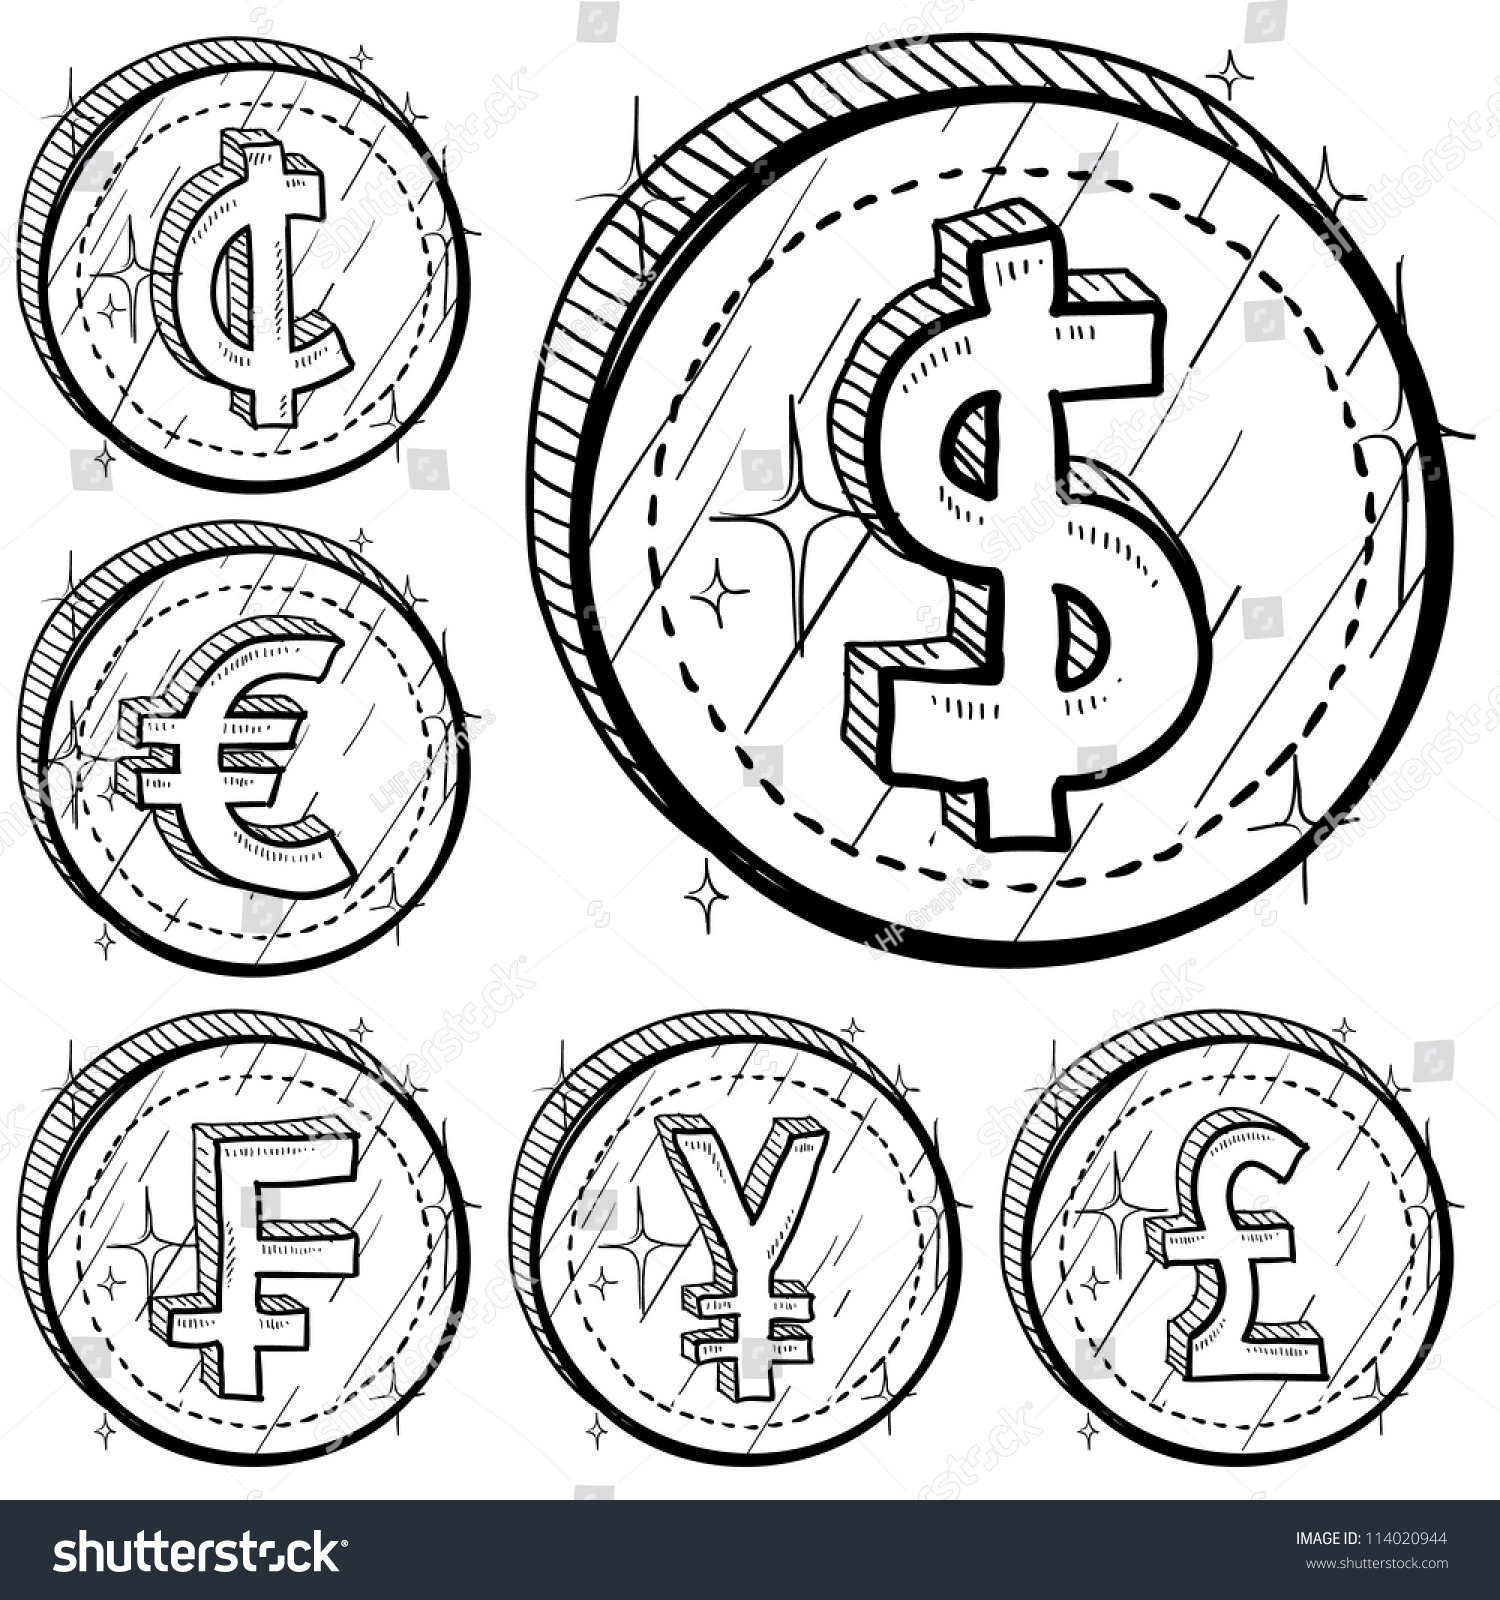 currency coloring pages french euro - photo#12